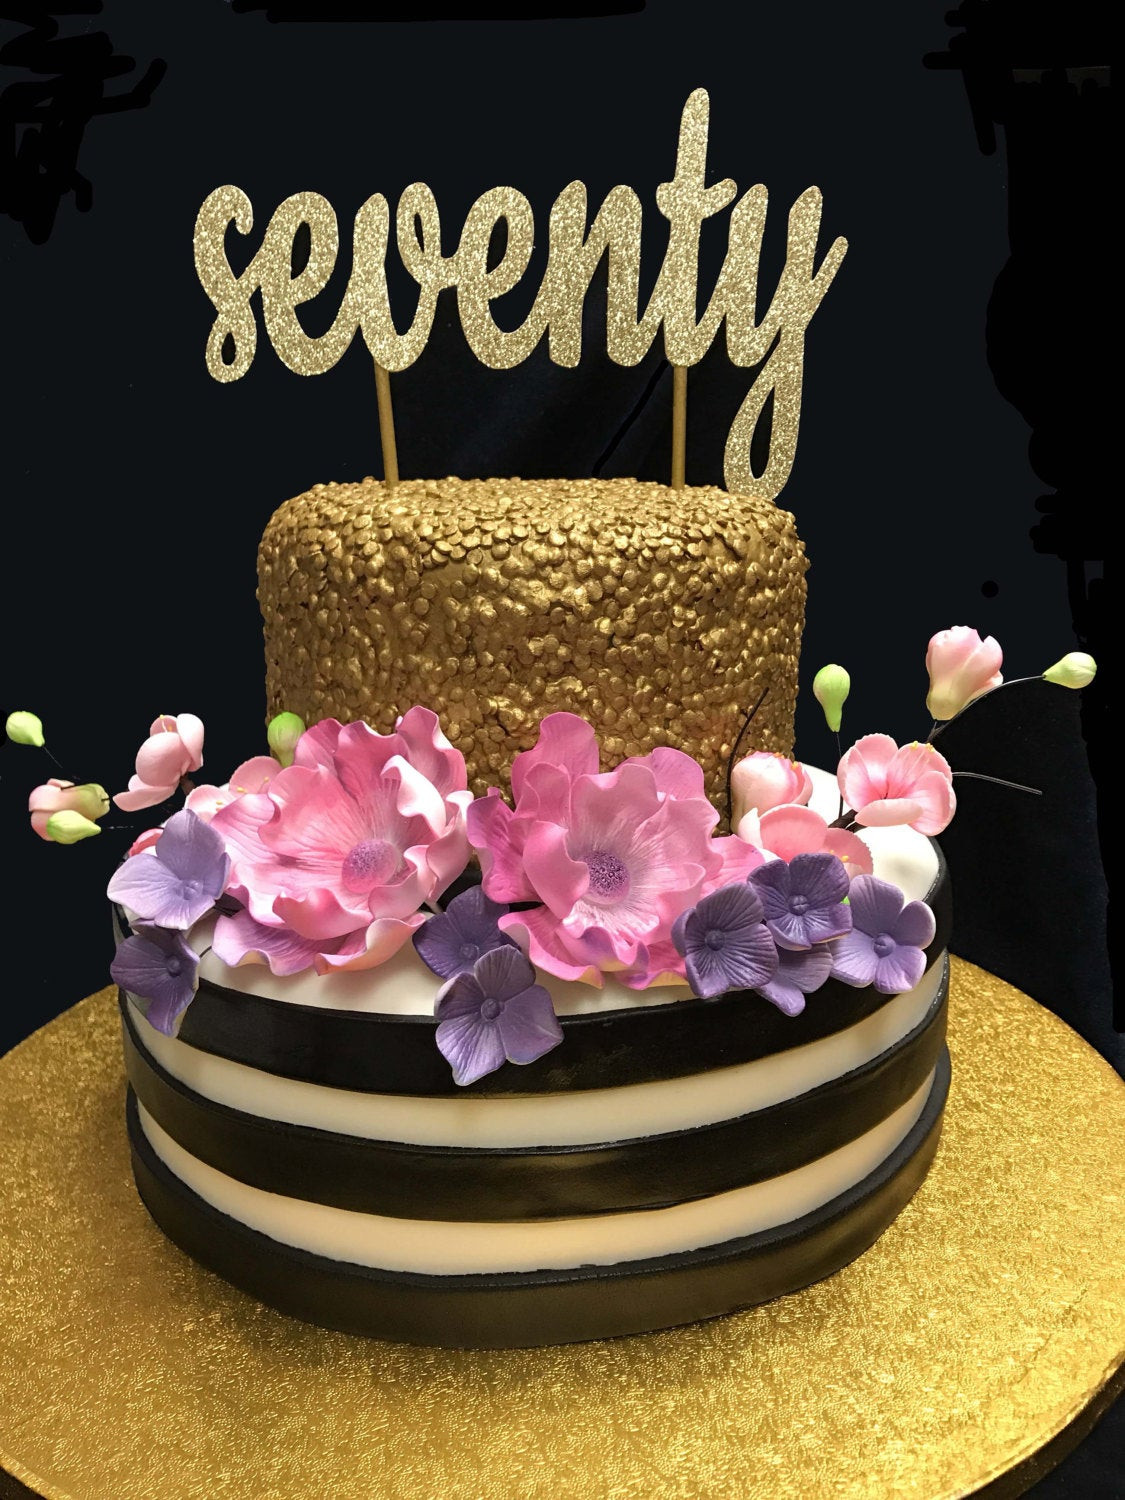 Best ideas about 70th Birthday Cake . Save or Pin Seventy Birthday Cake Topper 70th Cake Topper 70 Birthday Now.